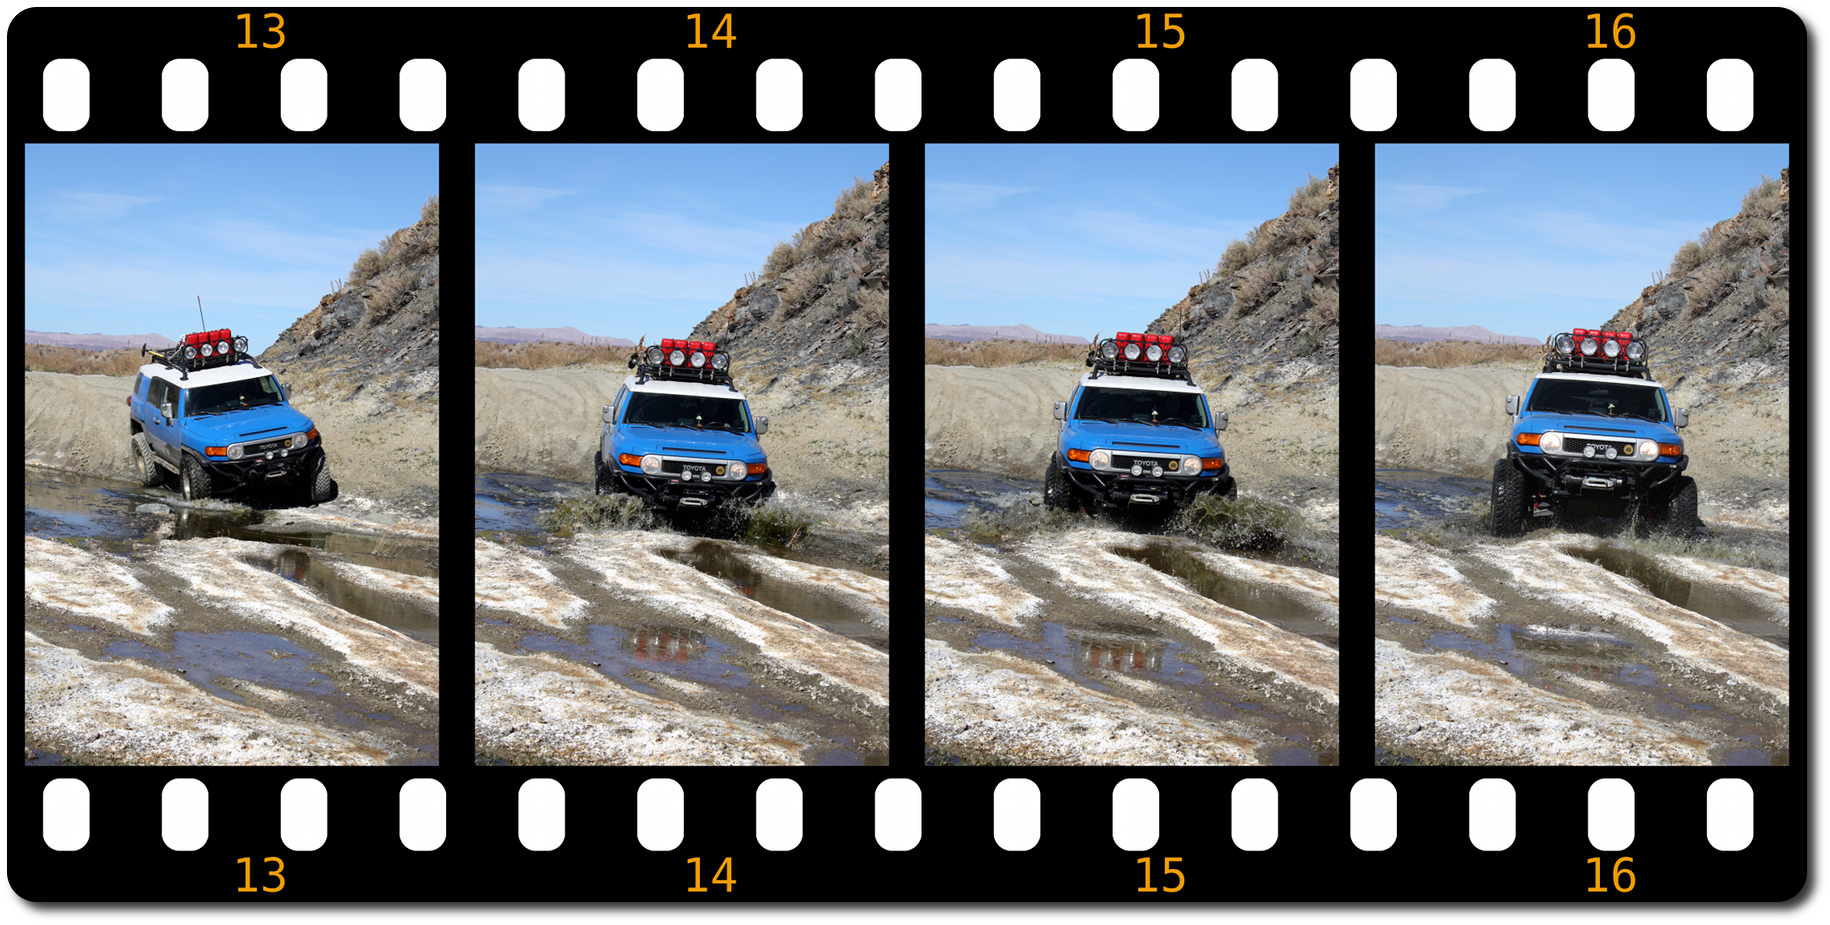 fj cruiser water fording